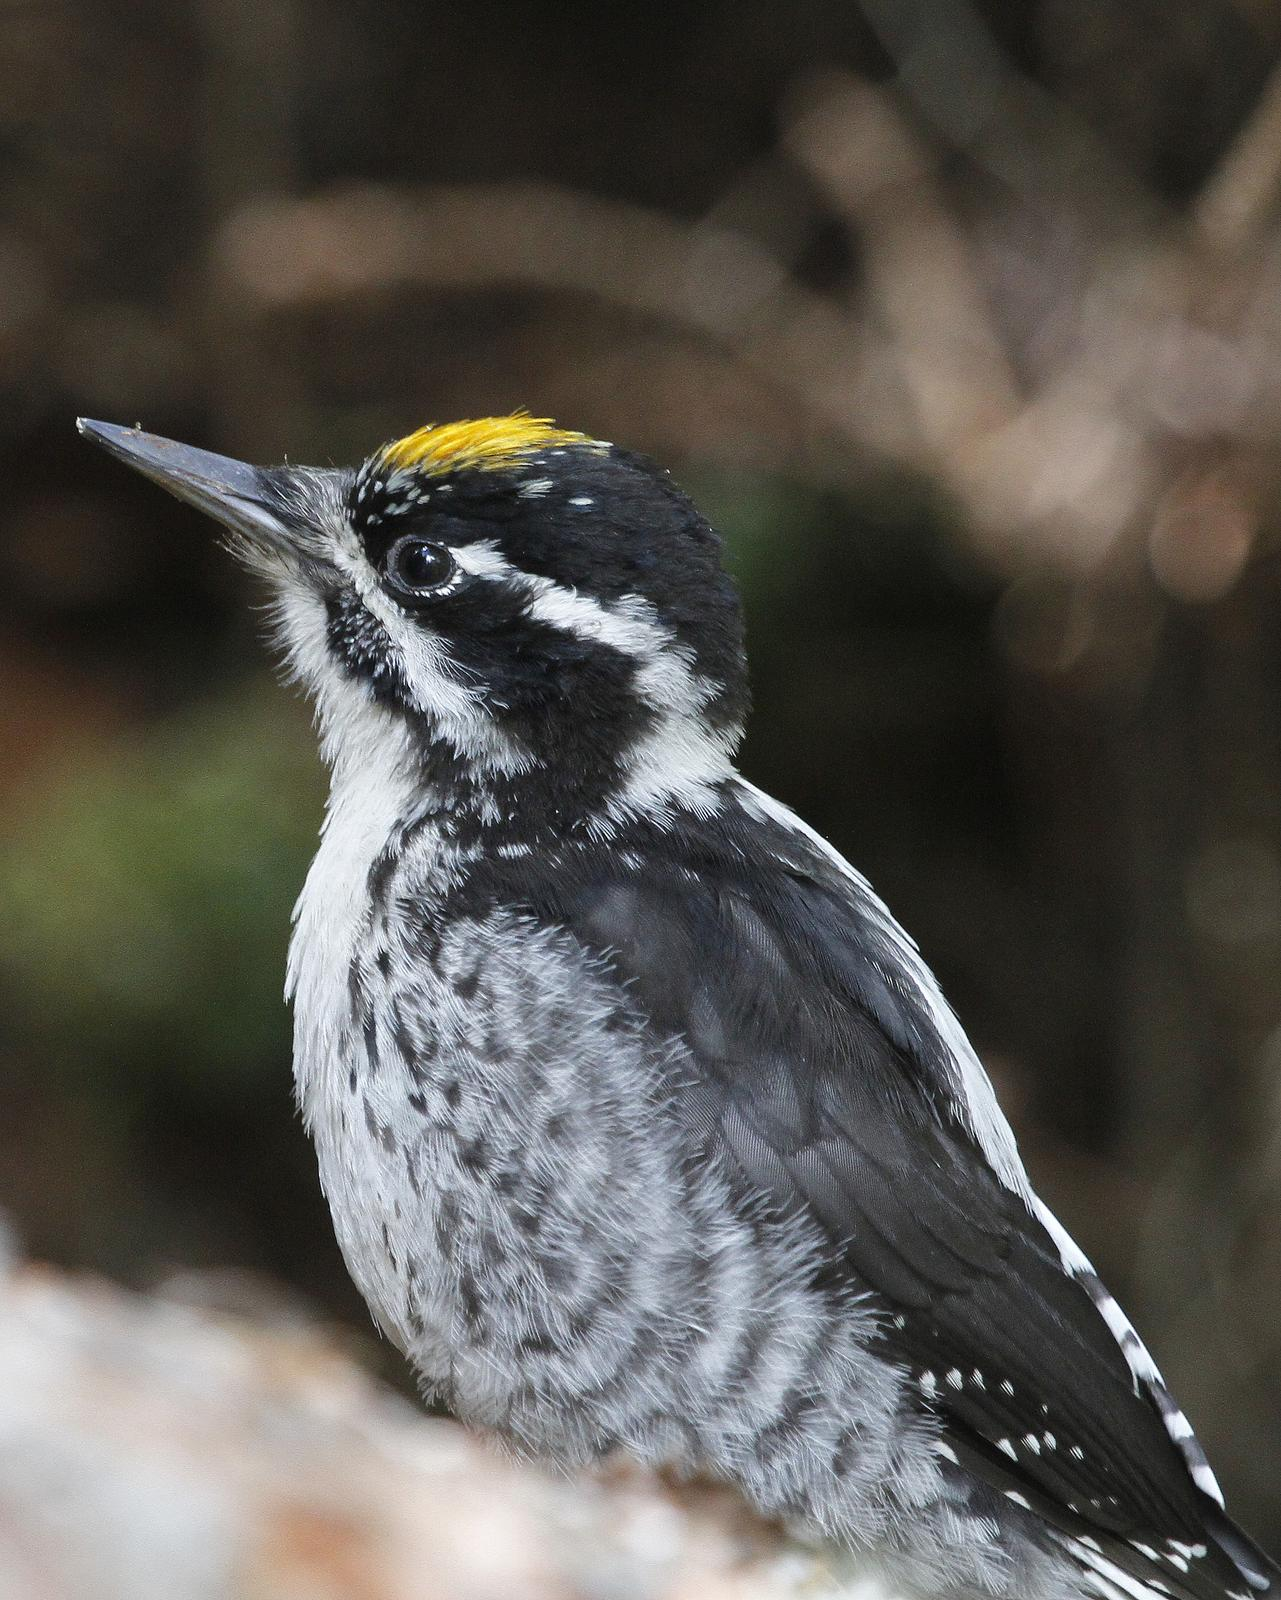 American Three-toed Woodpecker Photo by Isaac Sanchez